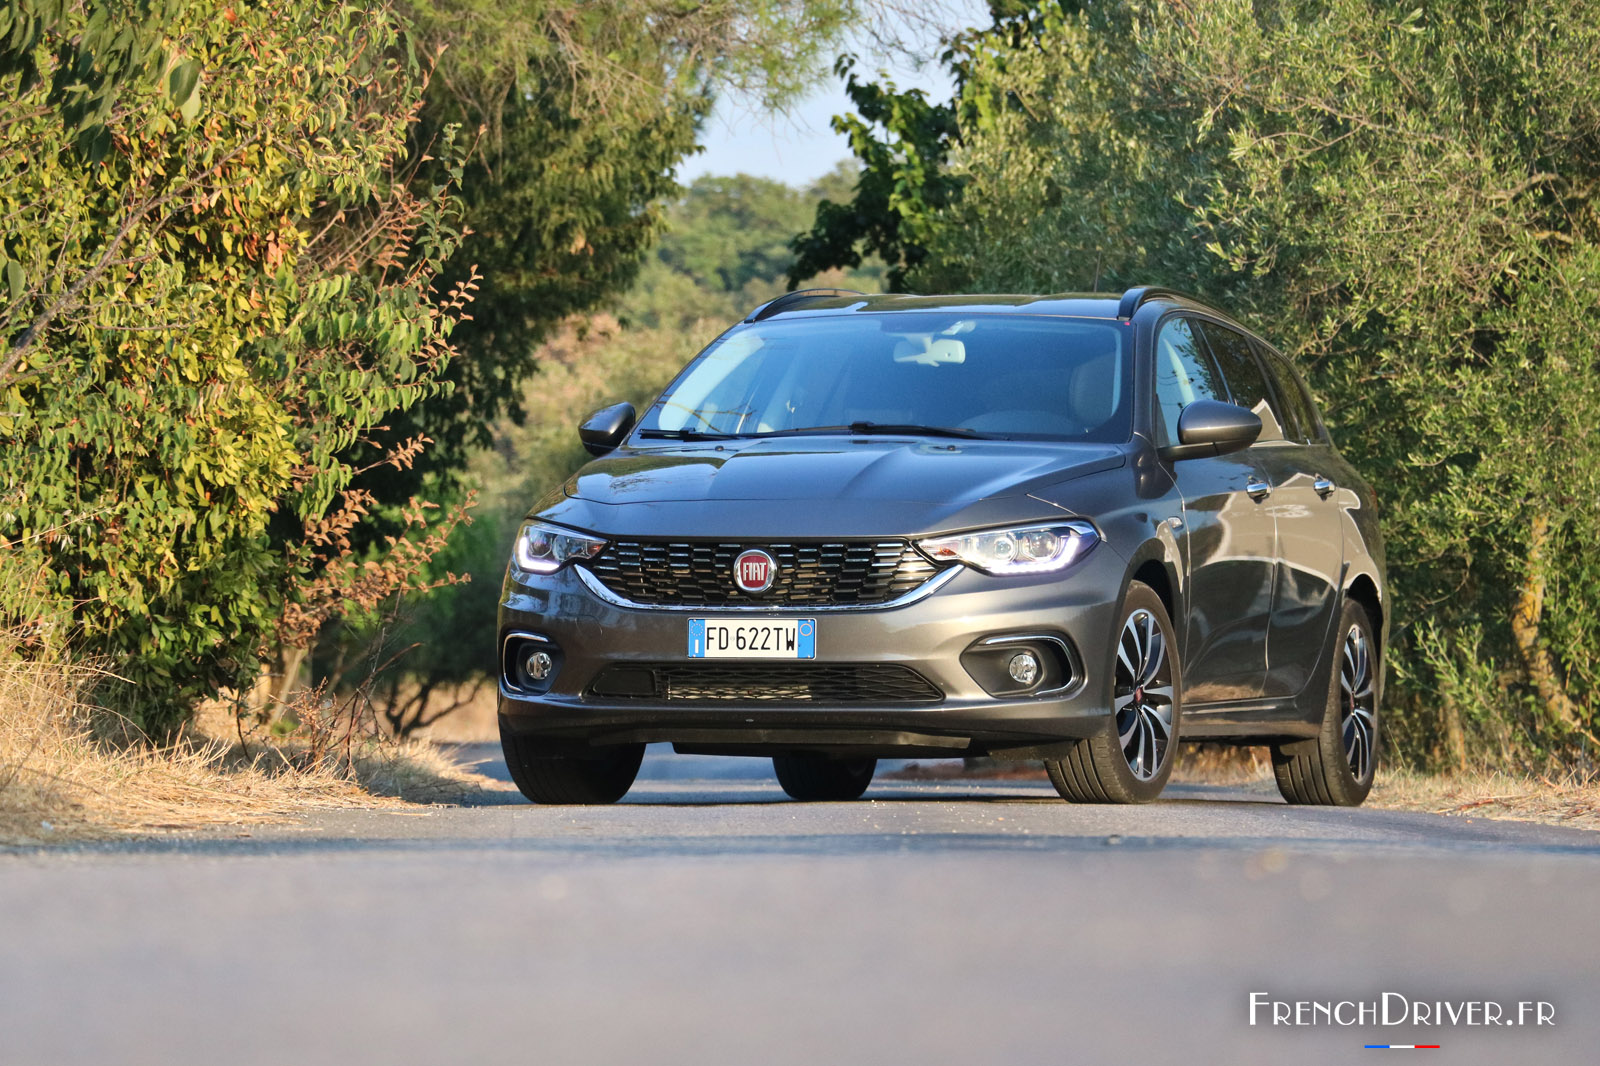 essai fiat tipo station wagon la famille s 39 agrandit french driver. Black Bedroom Furniture Sets. Home Design Ideas